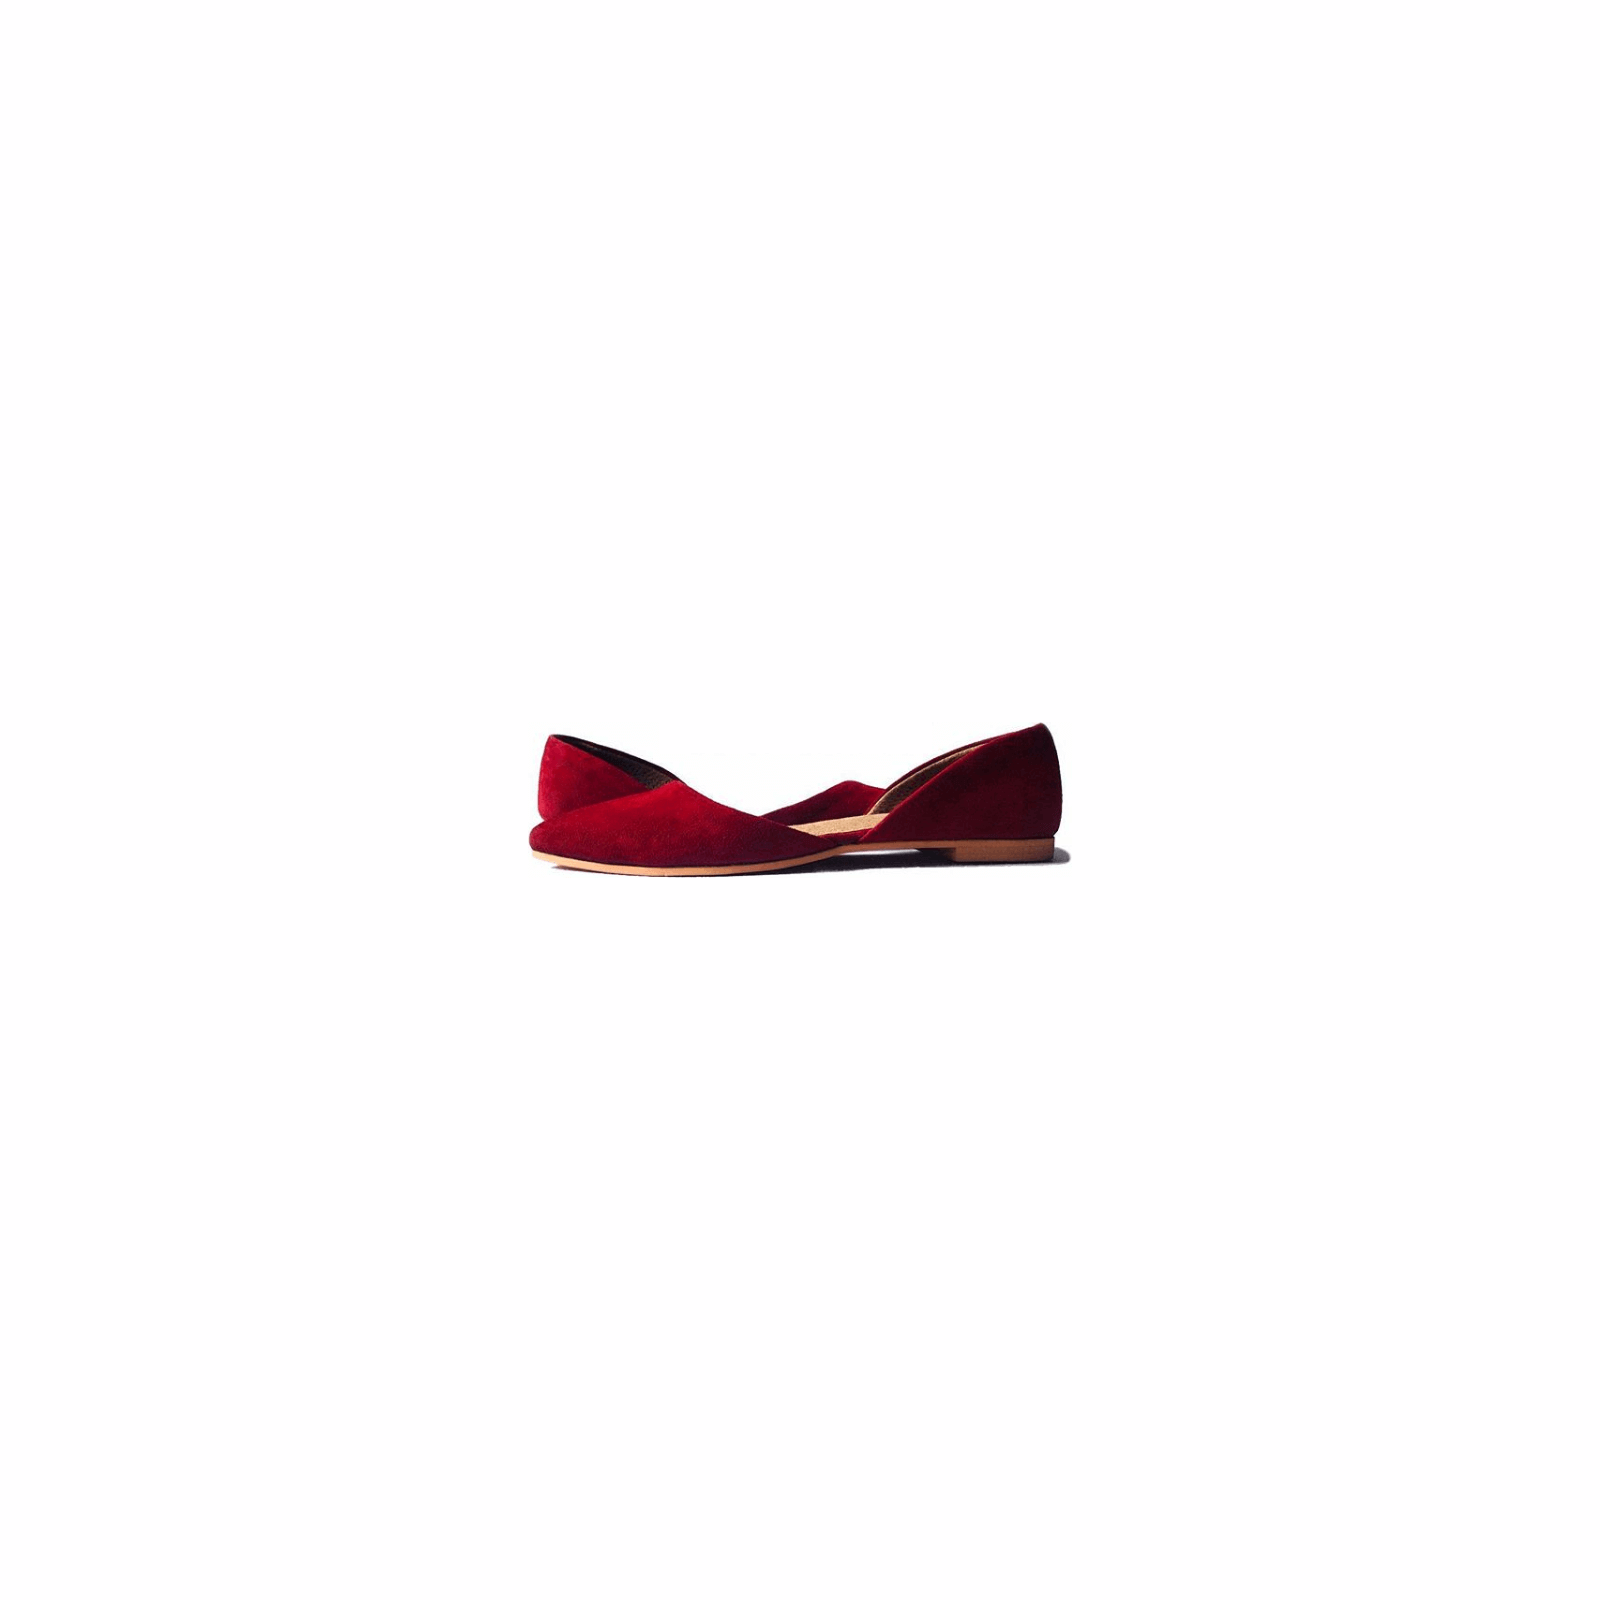 Suede Red Shoe Half Shoe